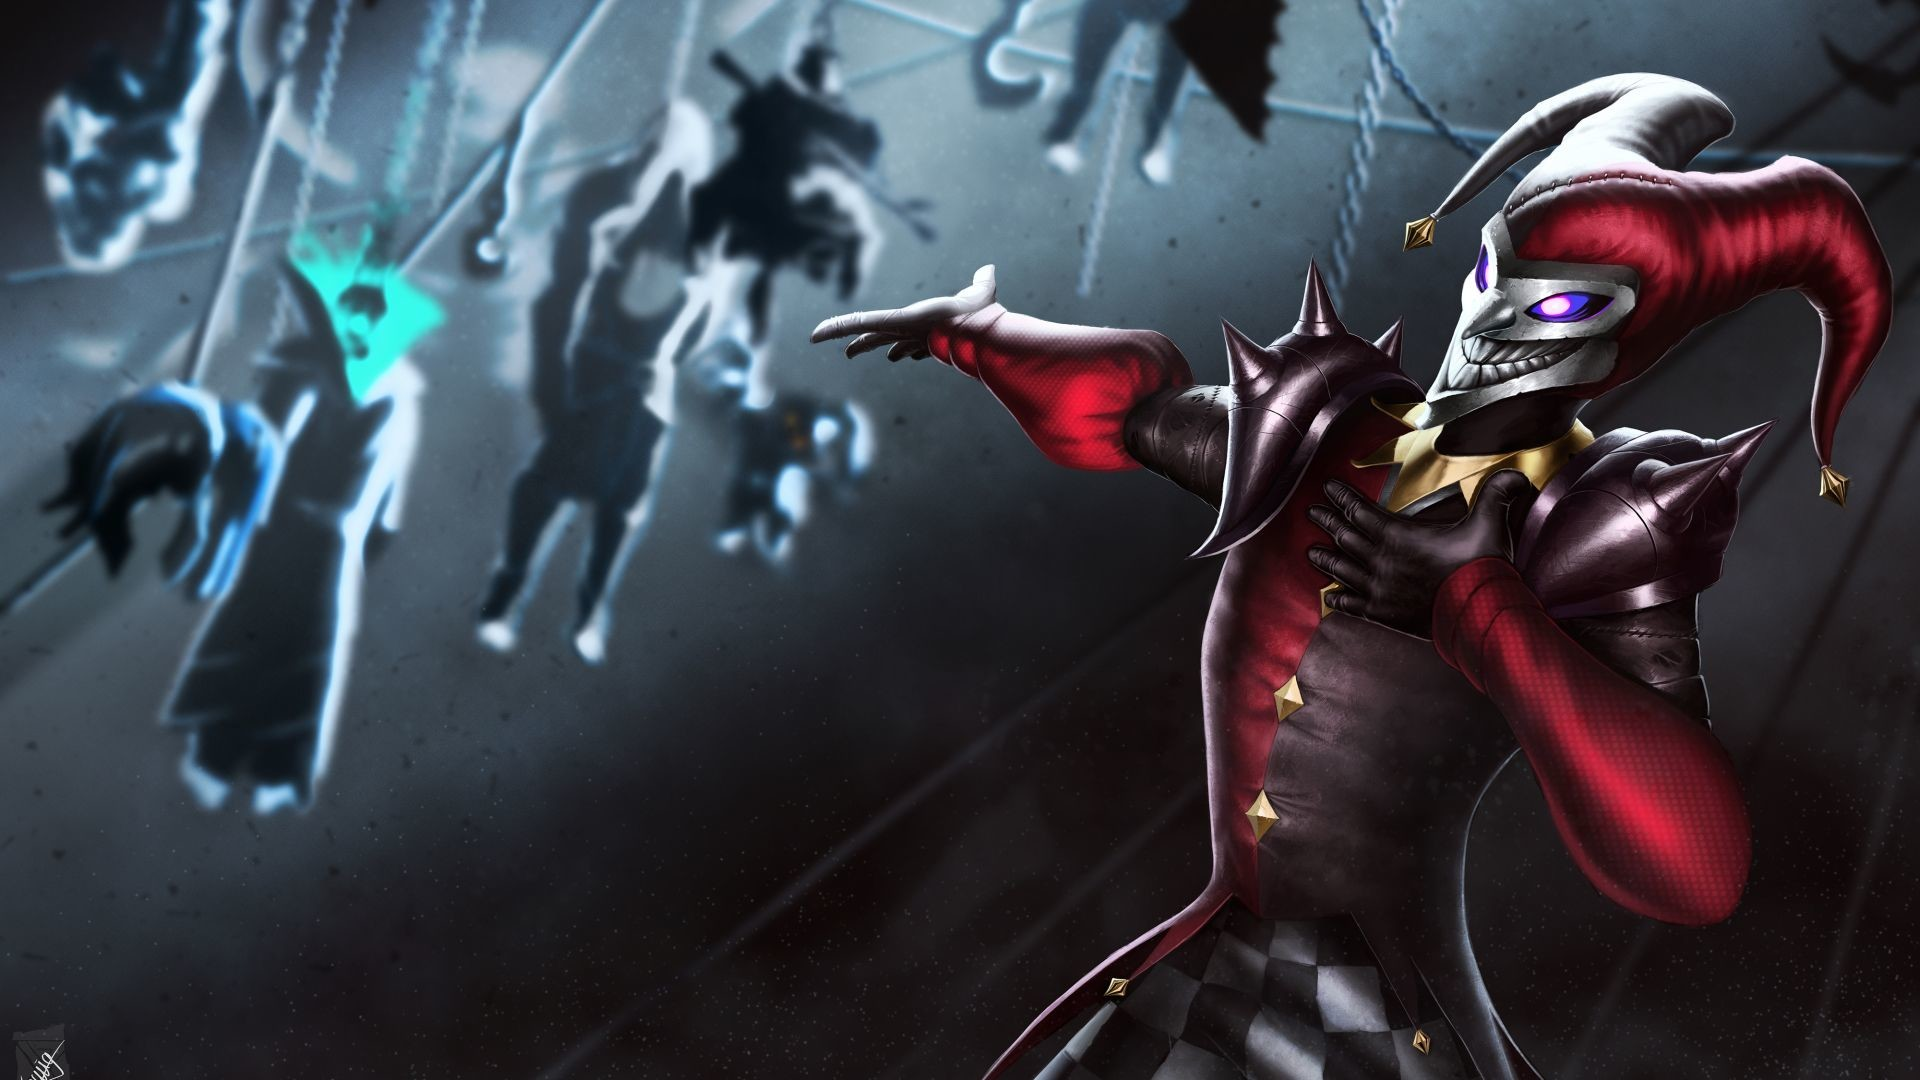 Res: 1920x1080, +http://imgtopic.com/league-of-legends-shaco-full-hd-wallpaper-/